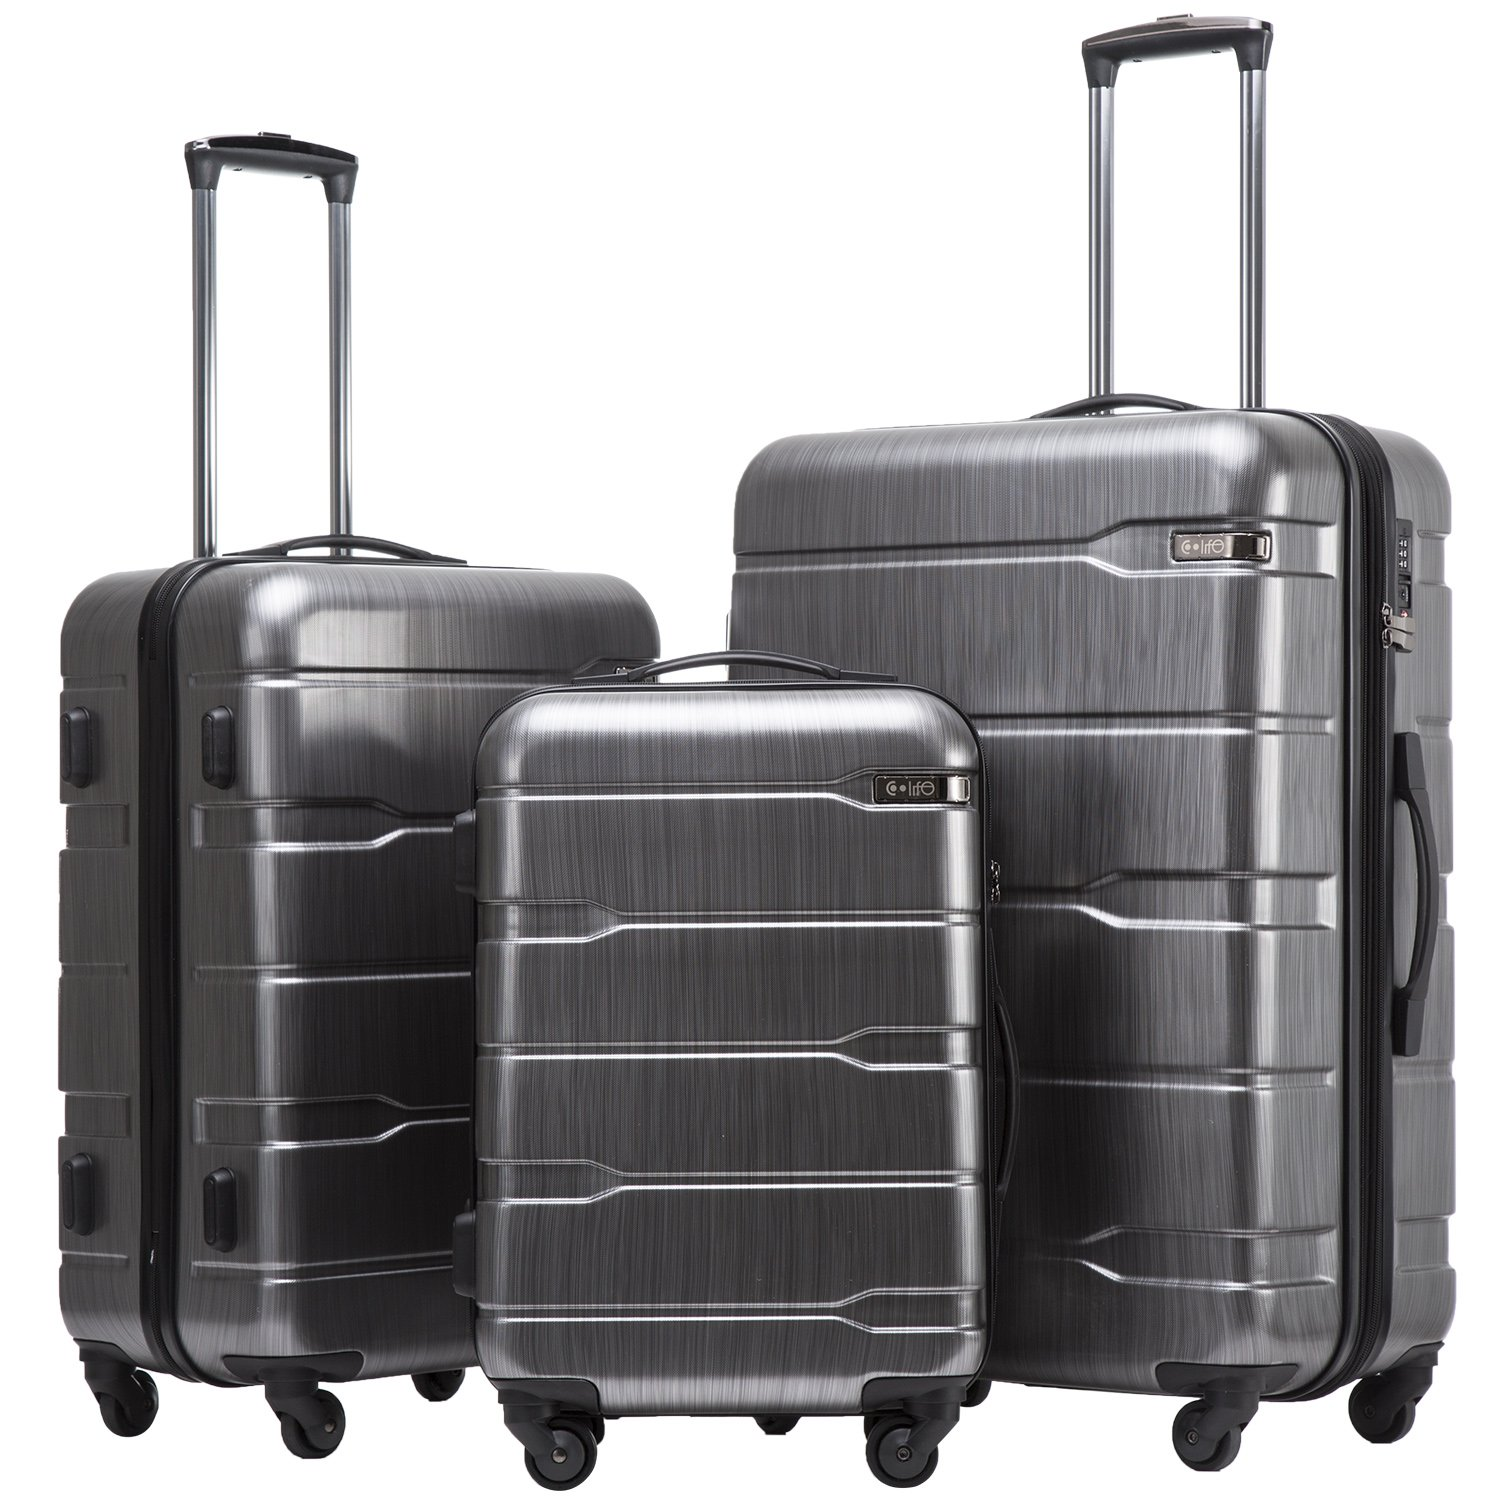 Coolife Luggage 3 Piece Sets PC+ABS Spinner Suitcase 20 inch 24 inch 28 inch (Charcoal)